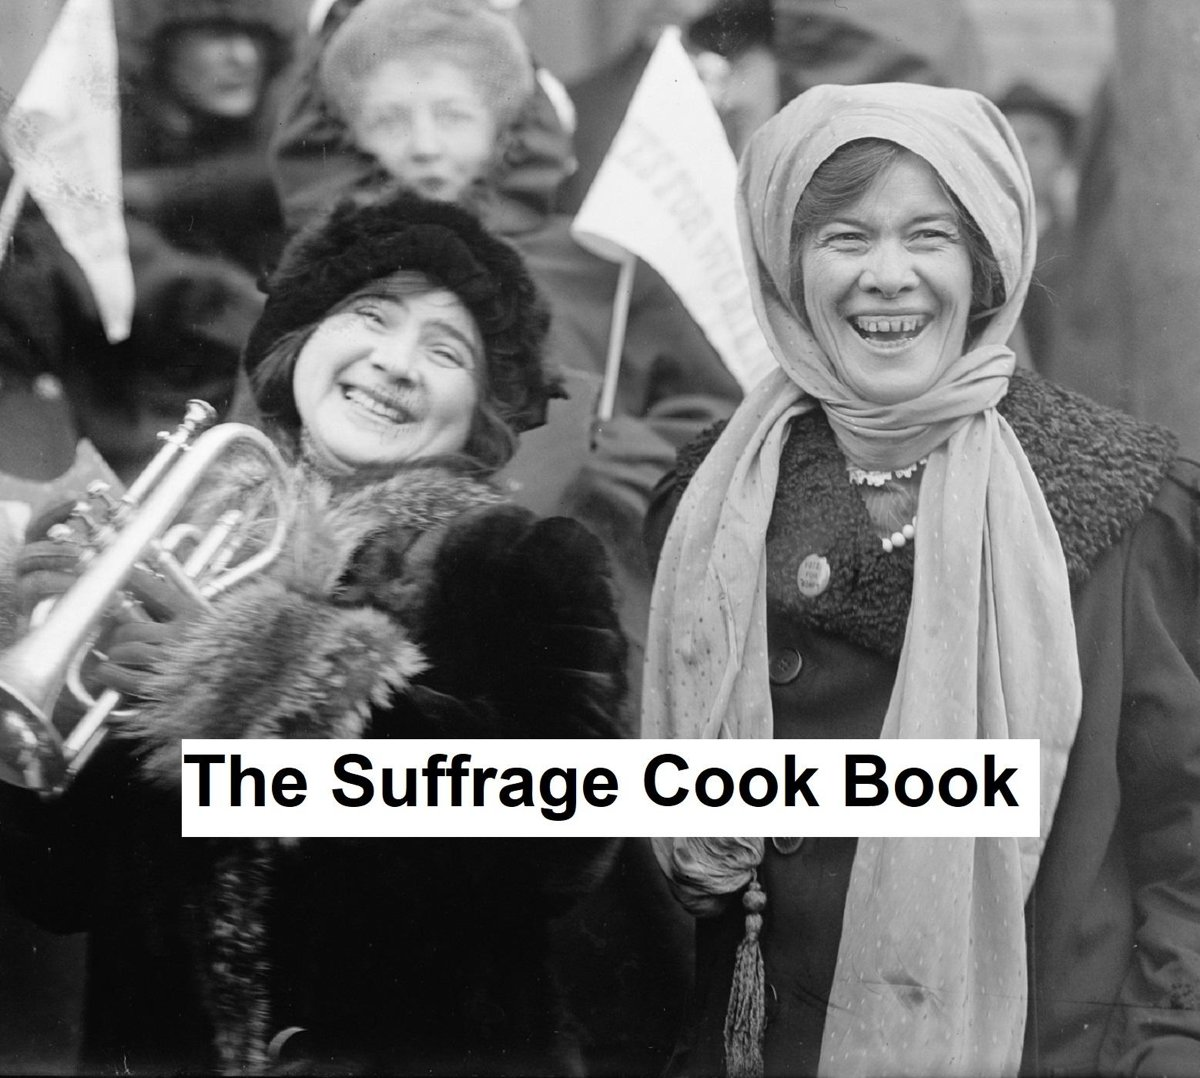 The Suffrage Cook Book, Illustrated